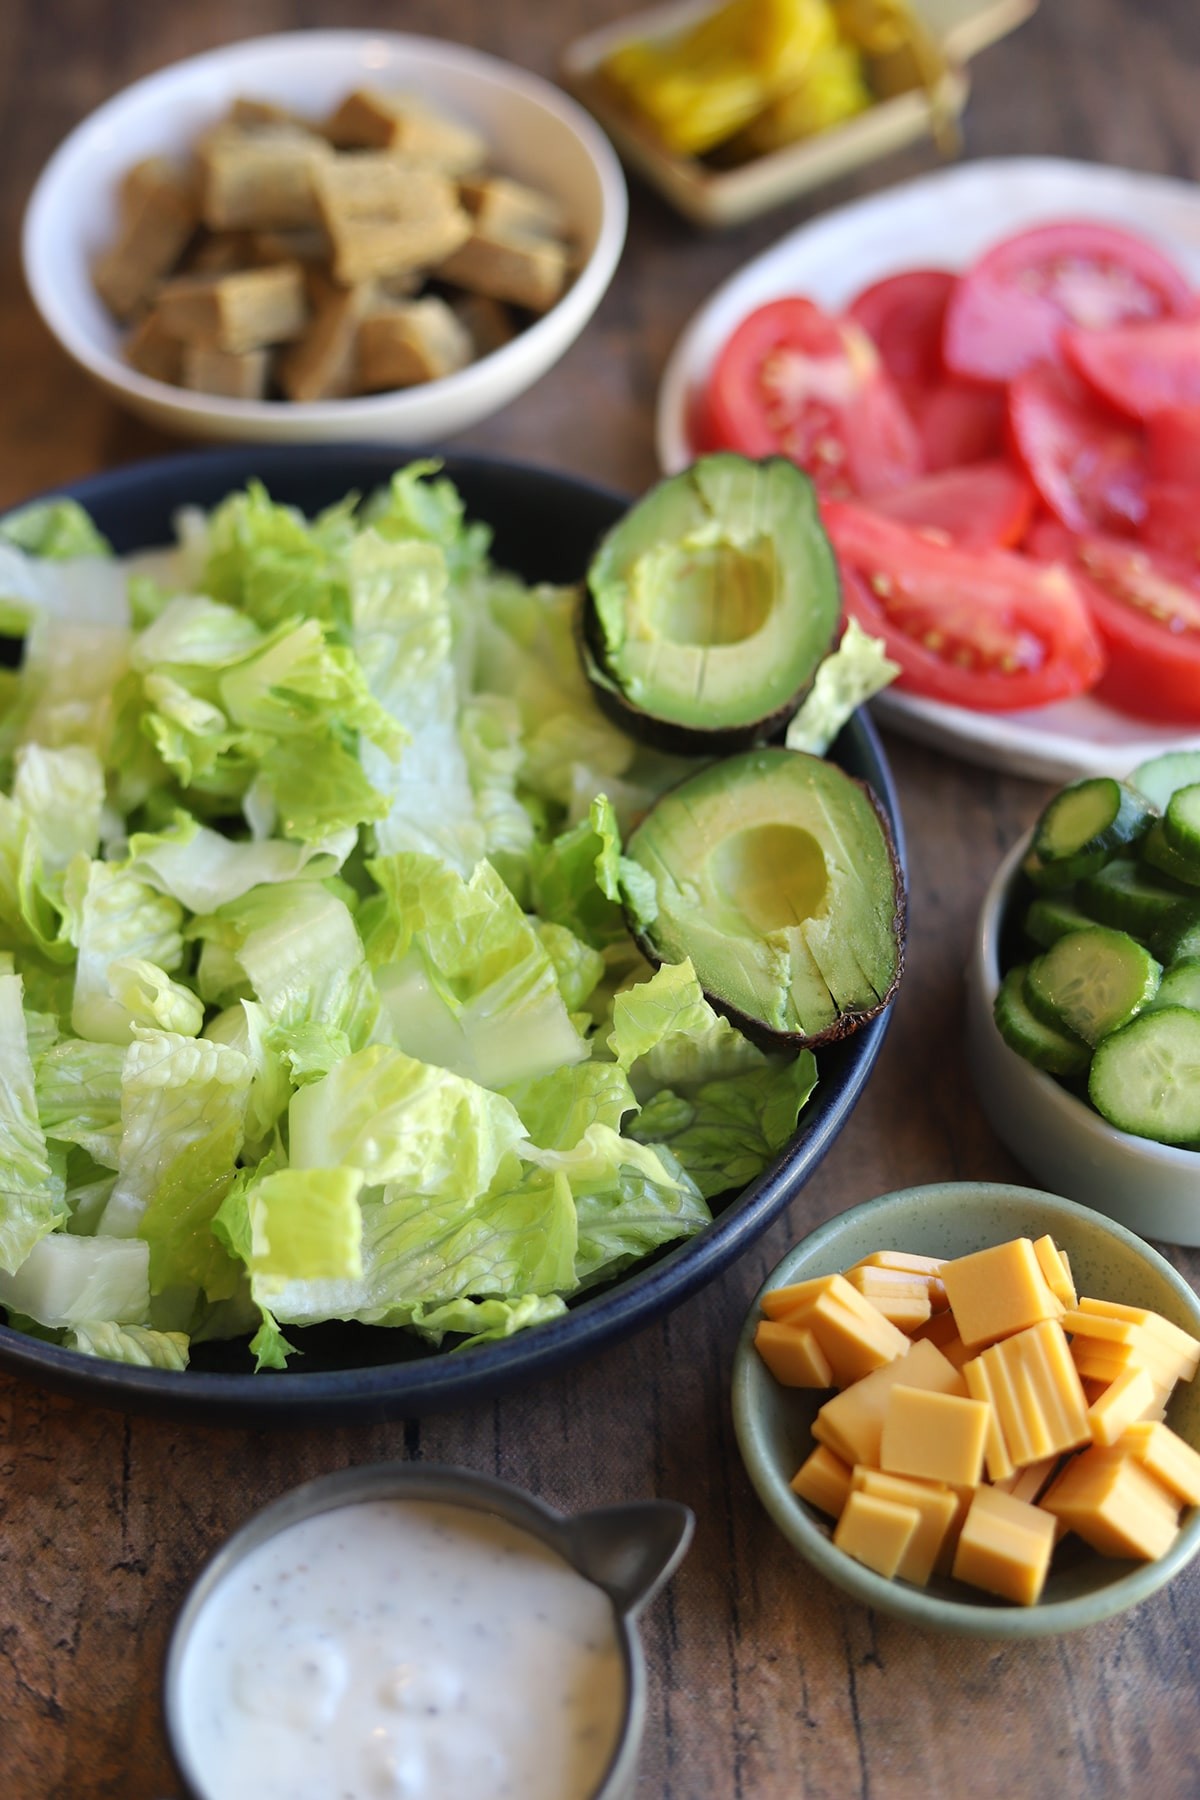 Bowl of lettuce with halved avocado, seitan, cheese, and dressing on table.